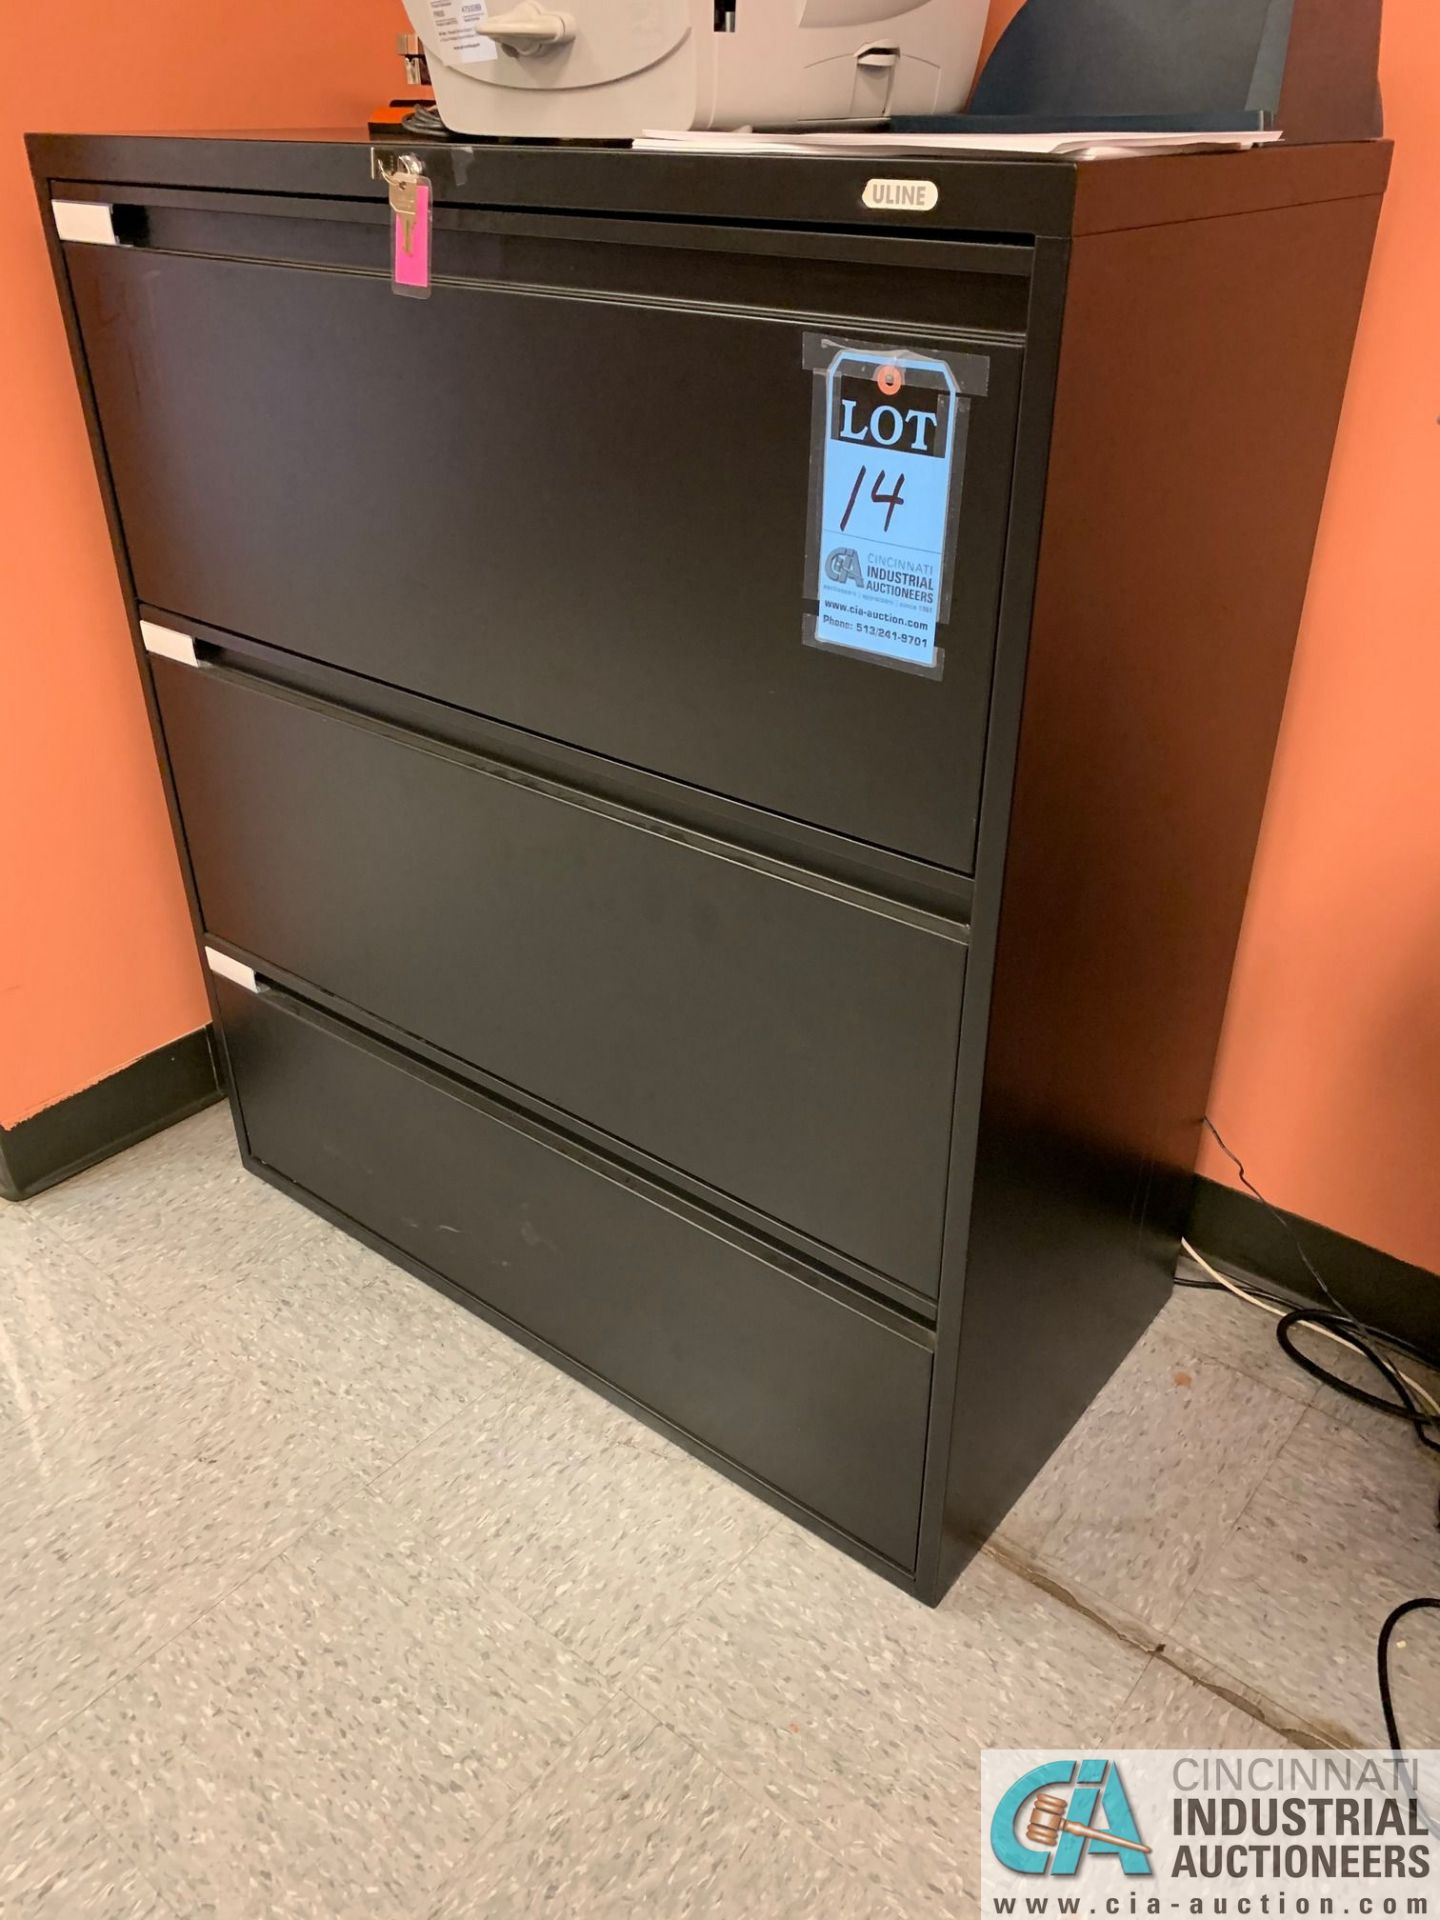 THREE-DRAWER LATERAL FILE CABINET (NO CONTENTS) (5400 OAKLEY INDUSTRIAL BLVD., FAIRBURN, GA 30213)